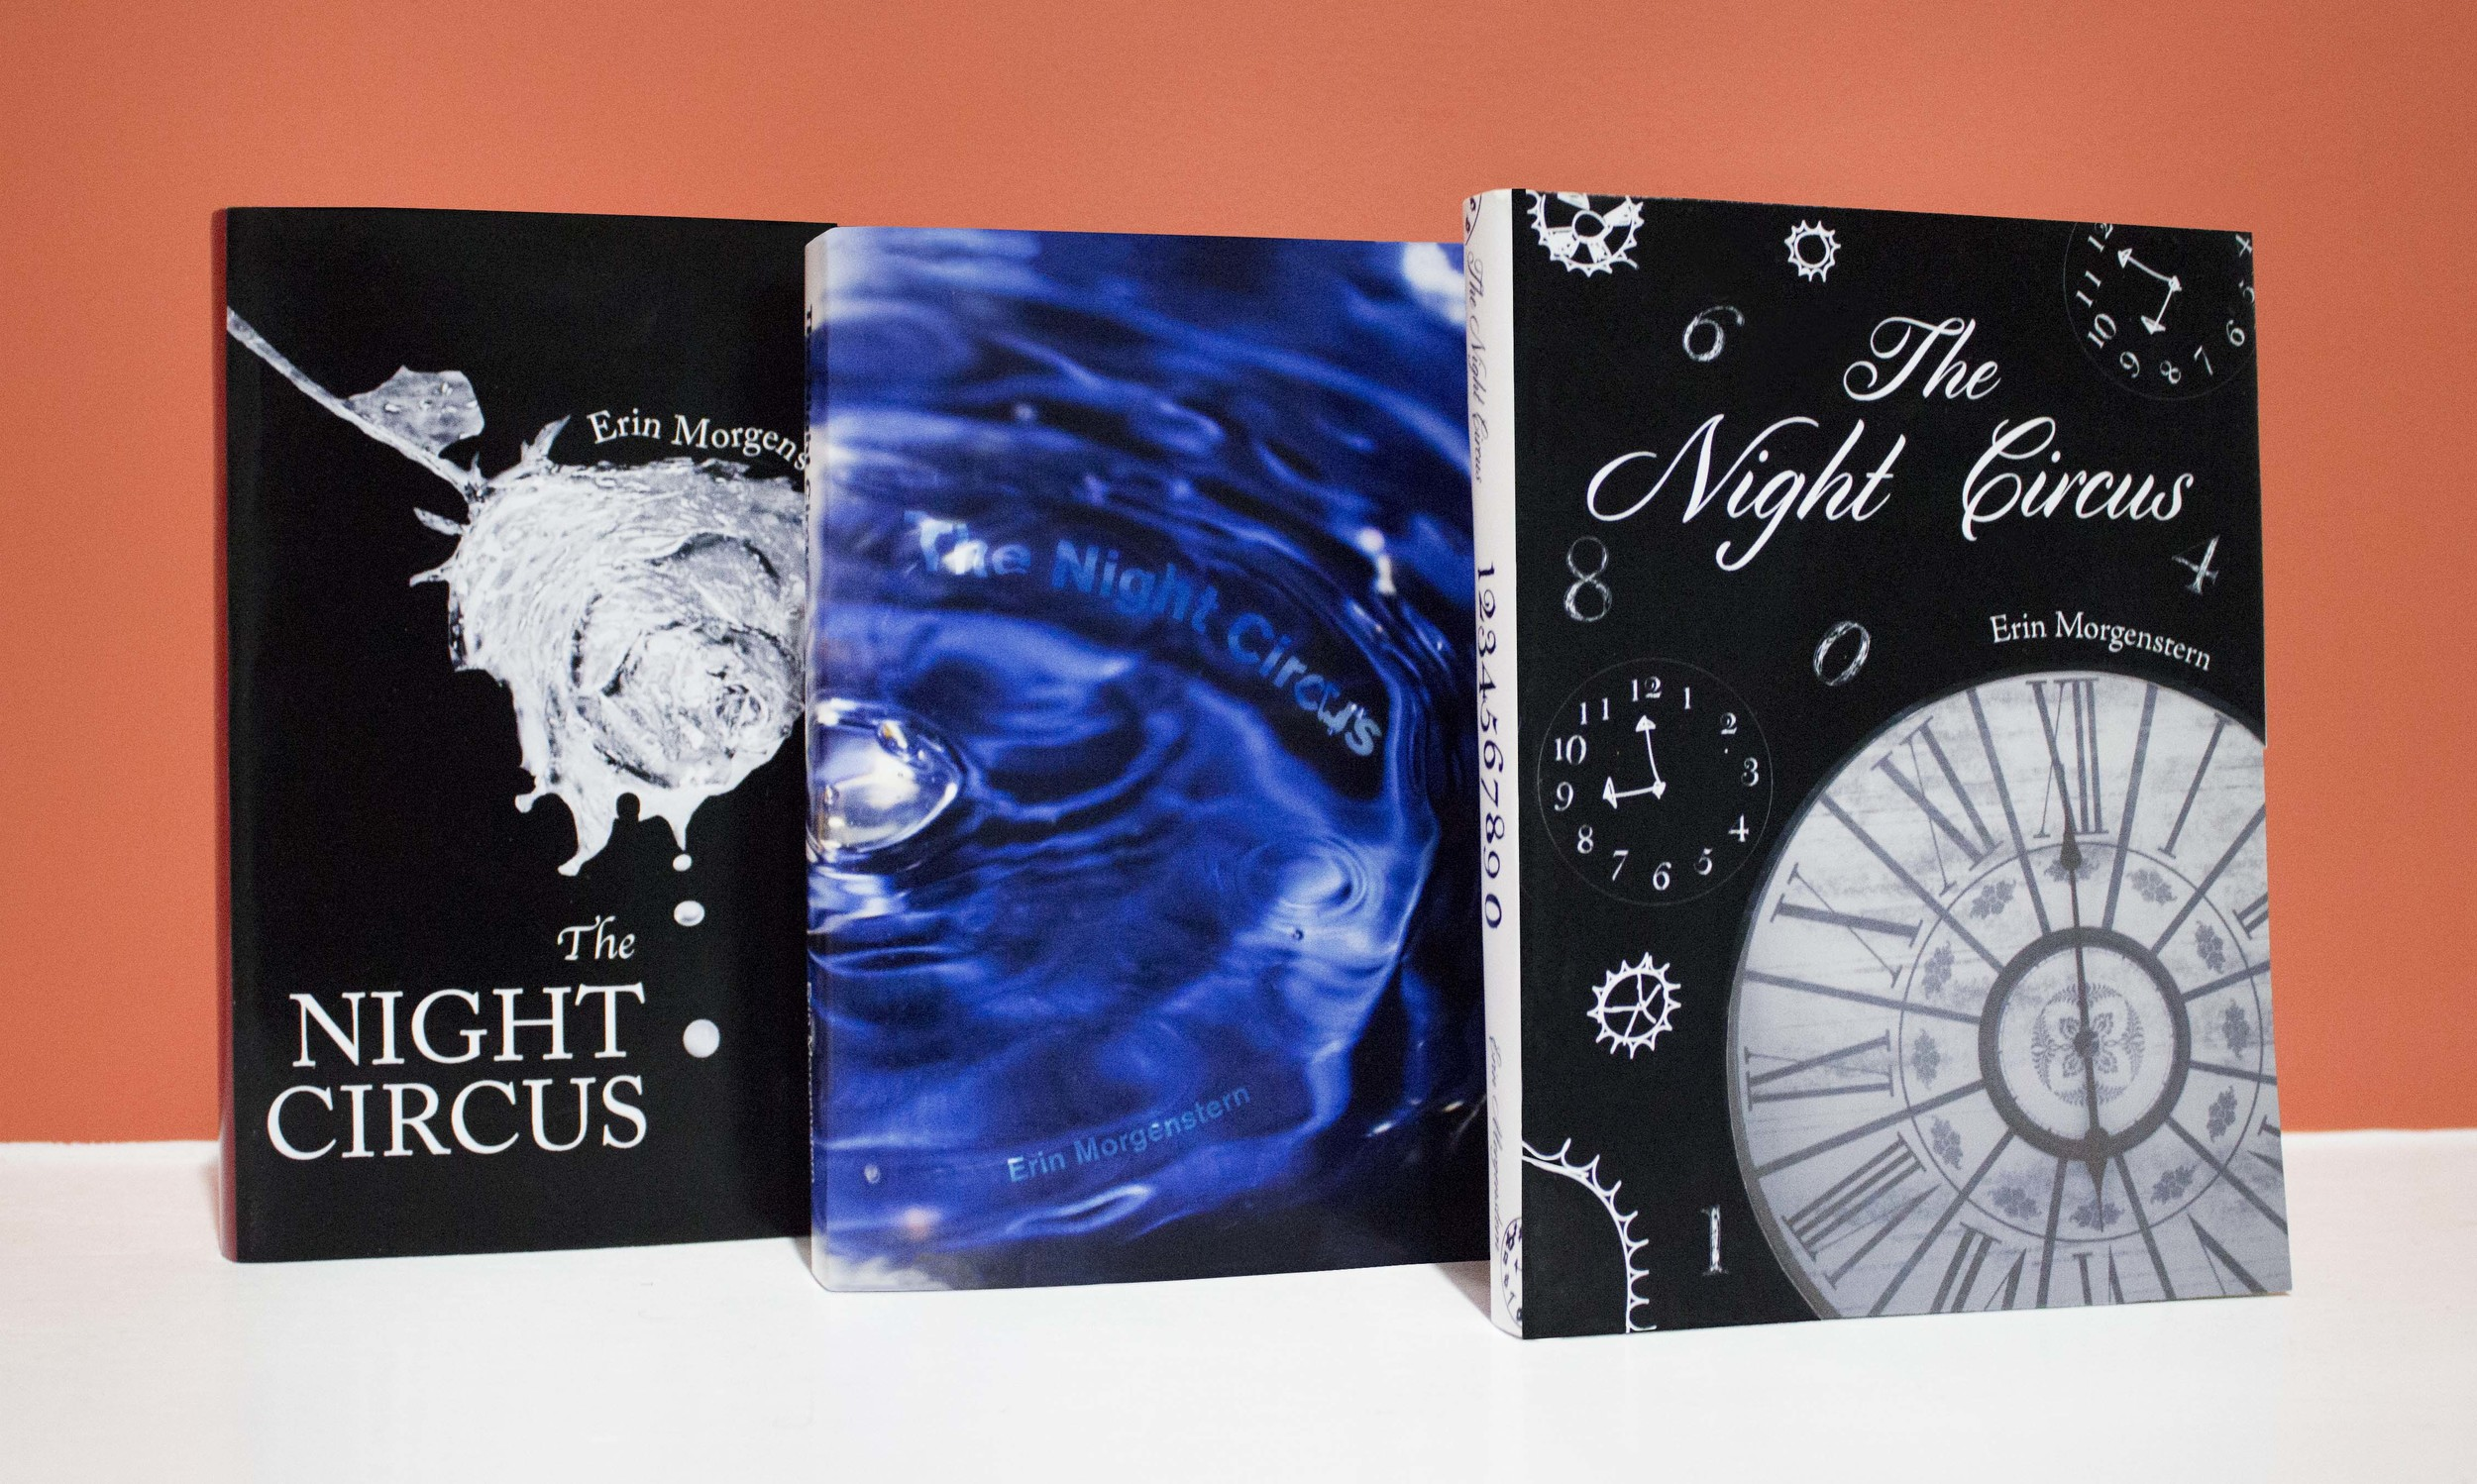 The night circus front covers.jpg